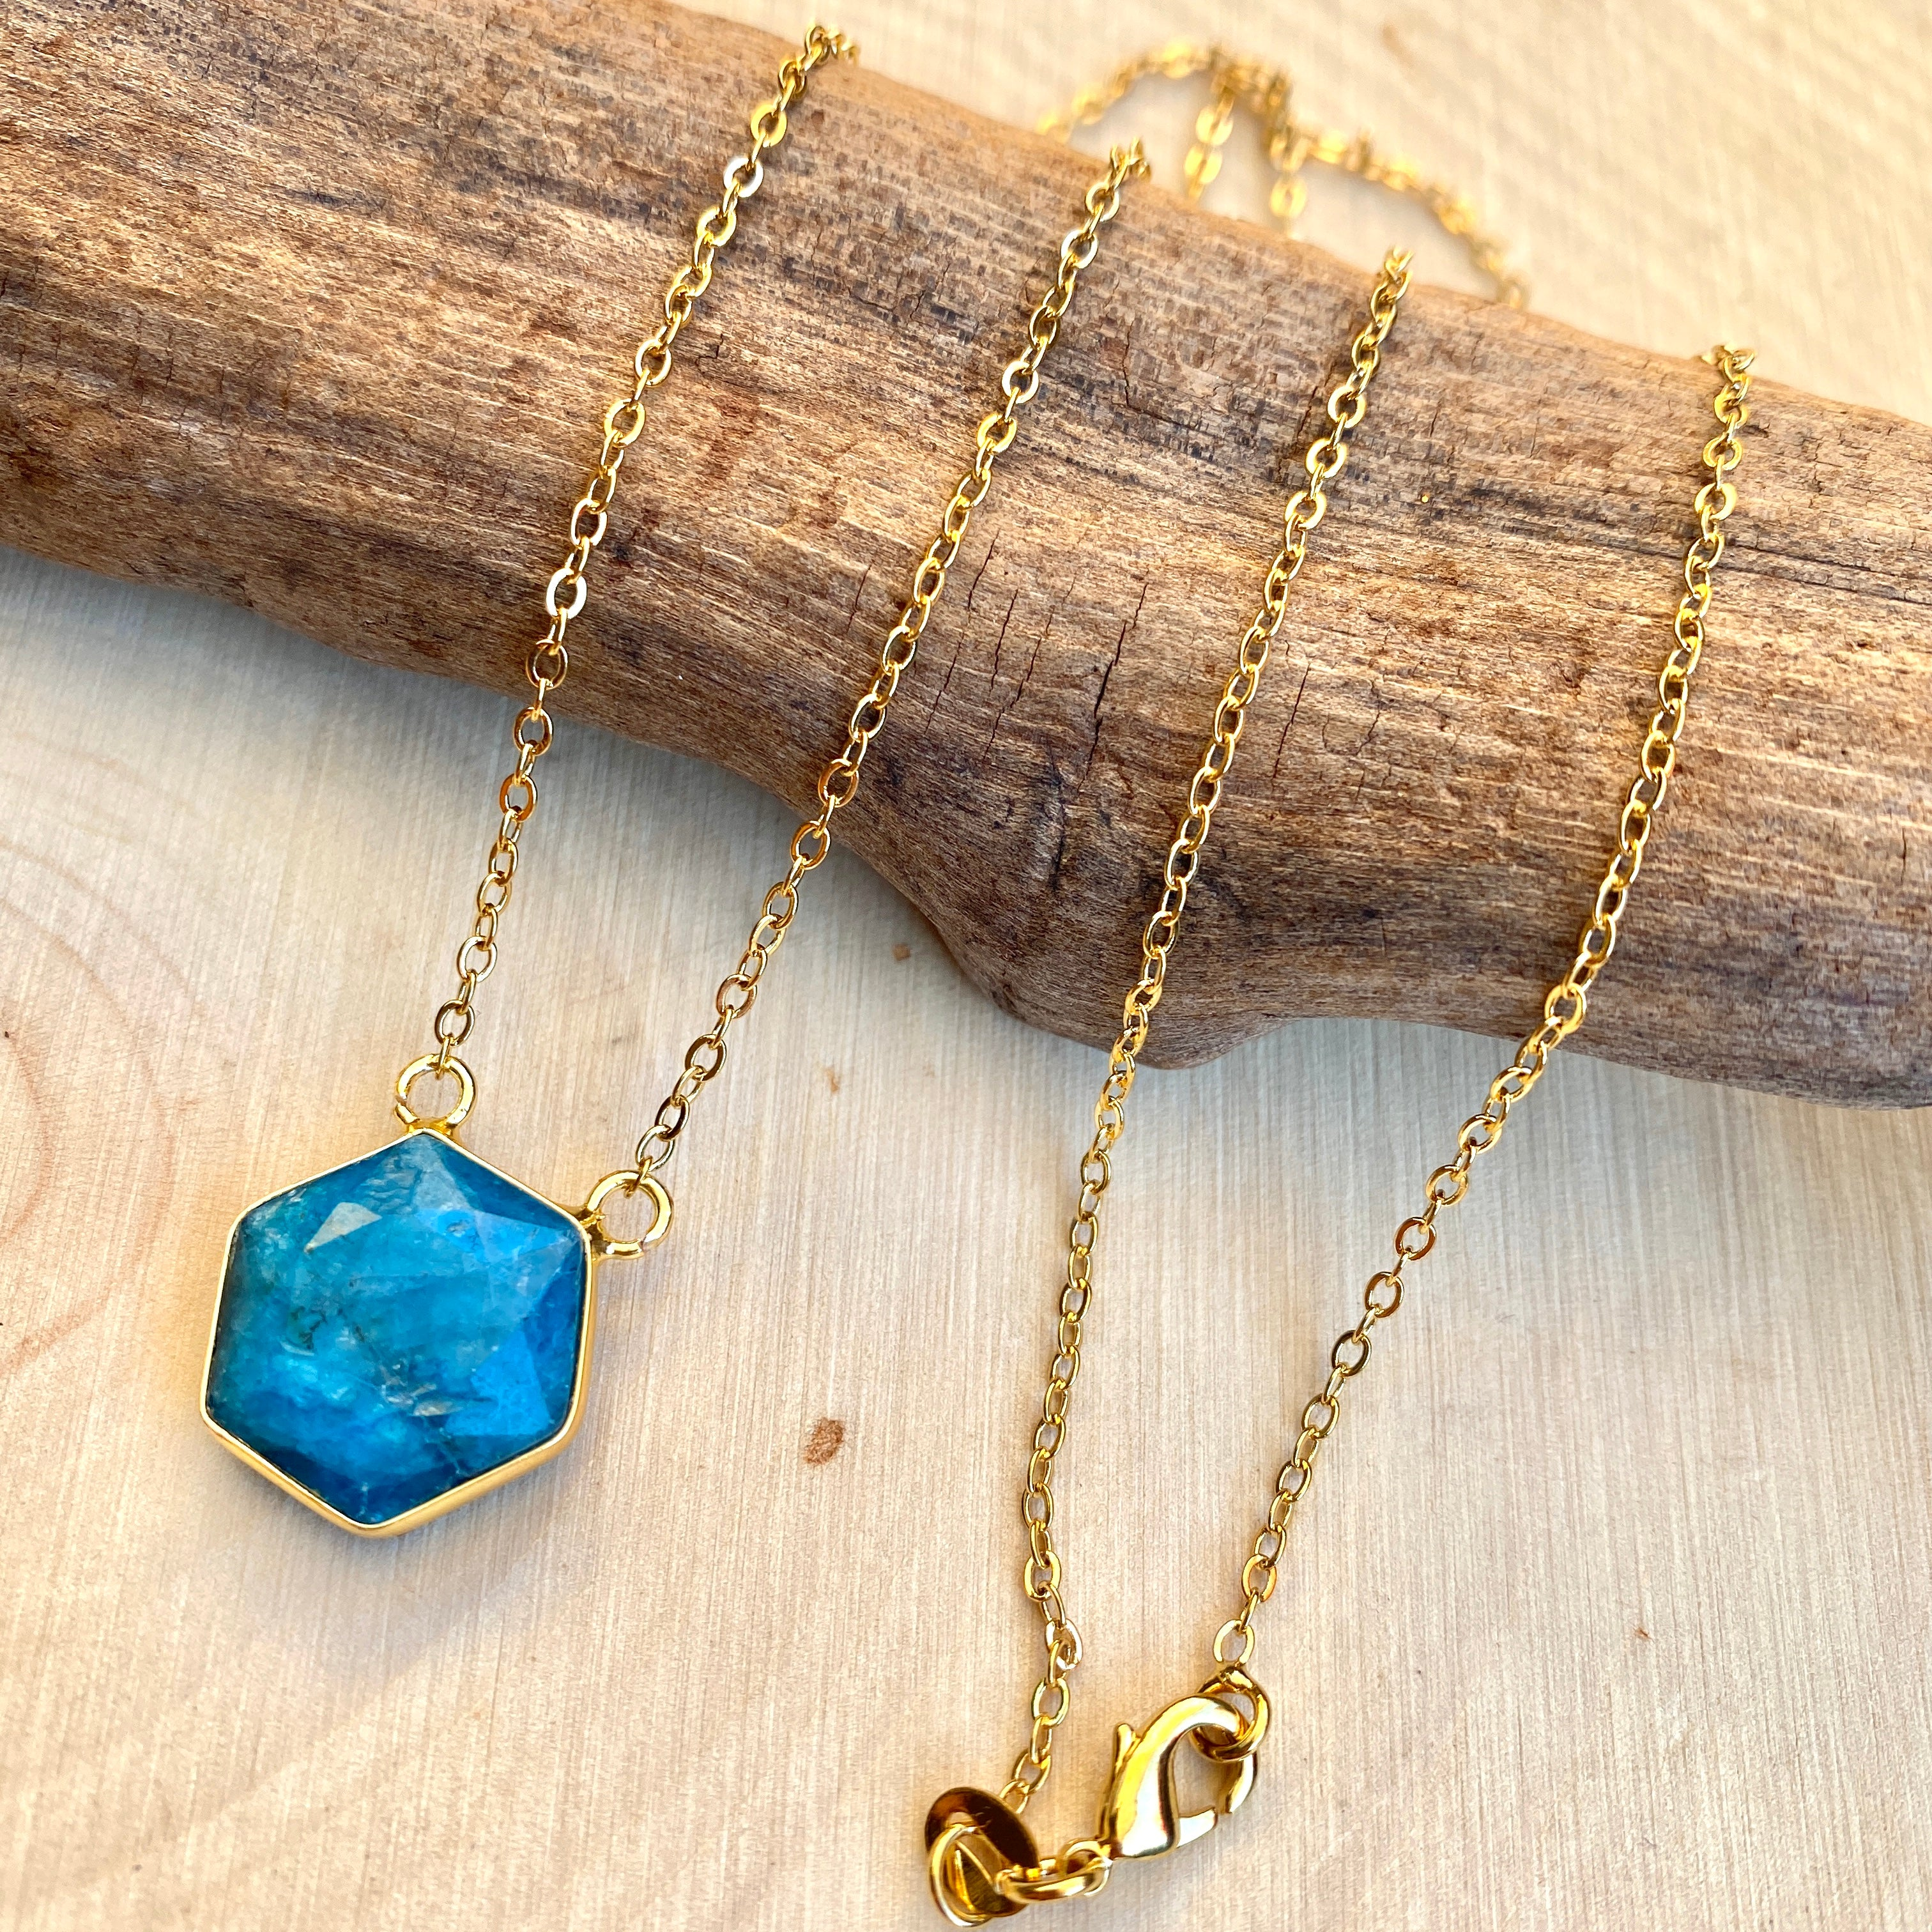 The Emotional Balance Necklace